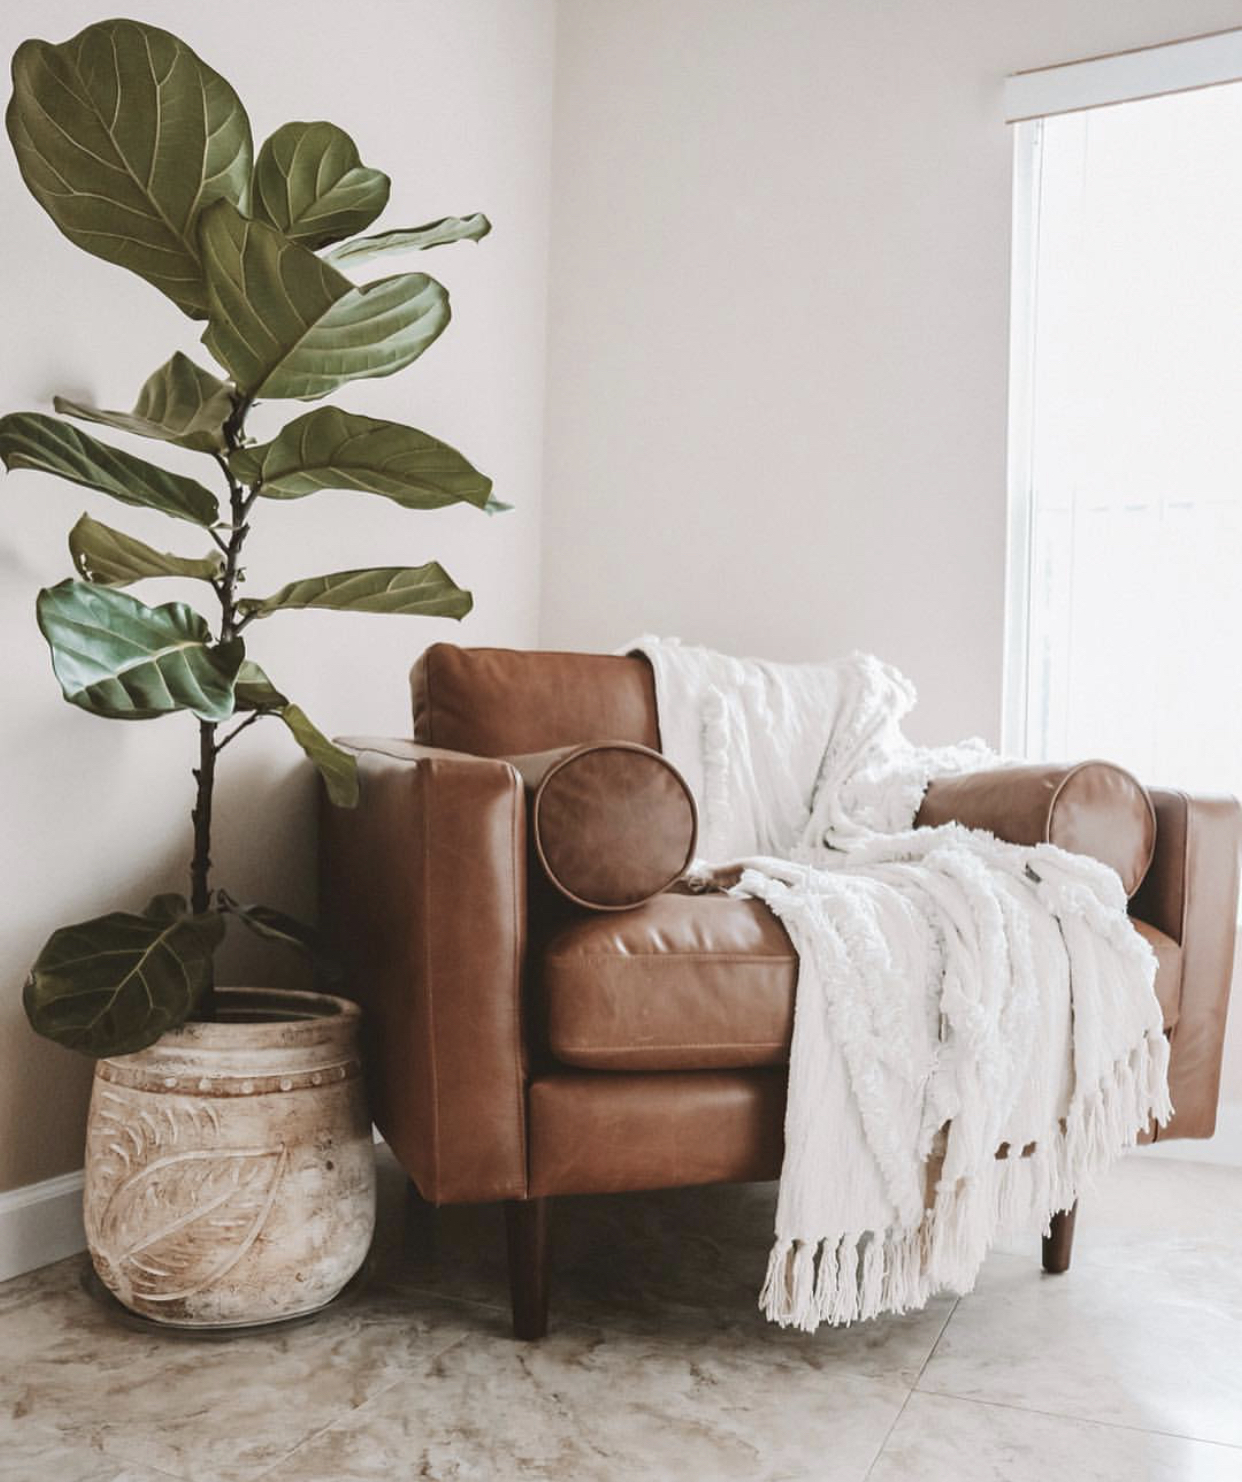 This fiddle leaf fig tree is amazing & I am on the hunt to find one for my living room!